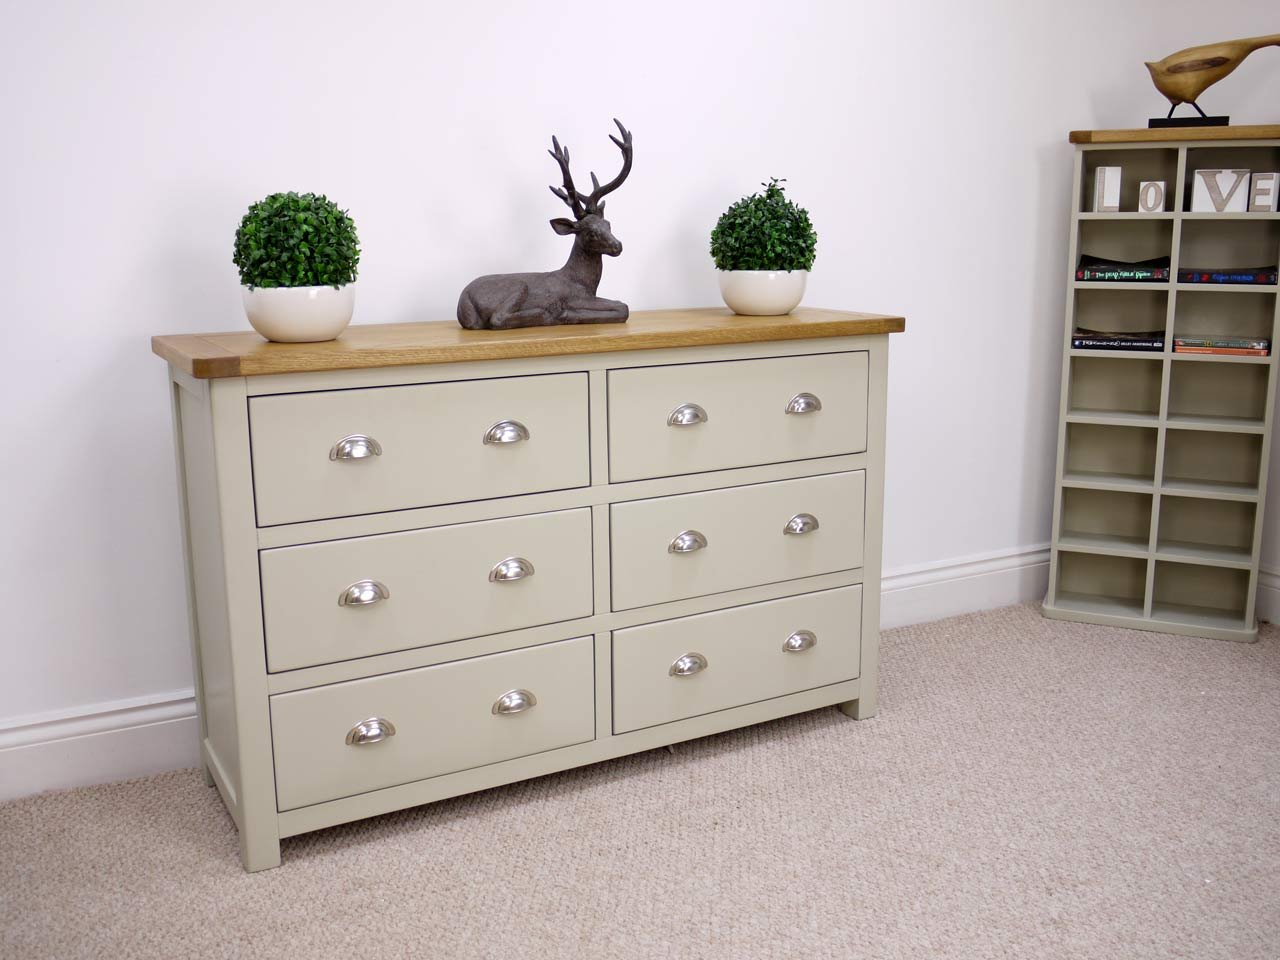 aspen white painted bedroom. Aspen Painted Oak Sage Grey Chest Of Drawers 6 Drawer Storage Bedroom Furniture Amazoncouk Kitchen U0026 Home White